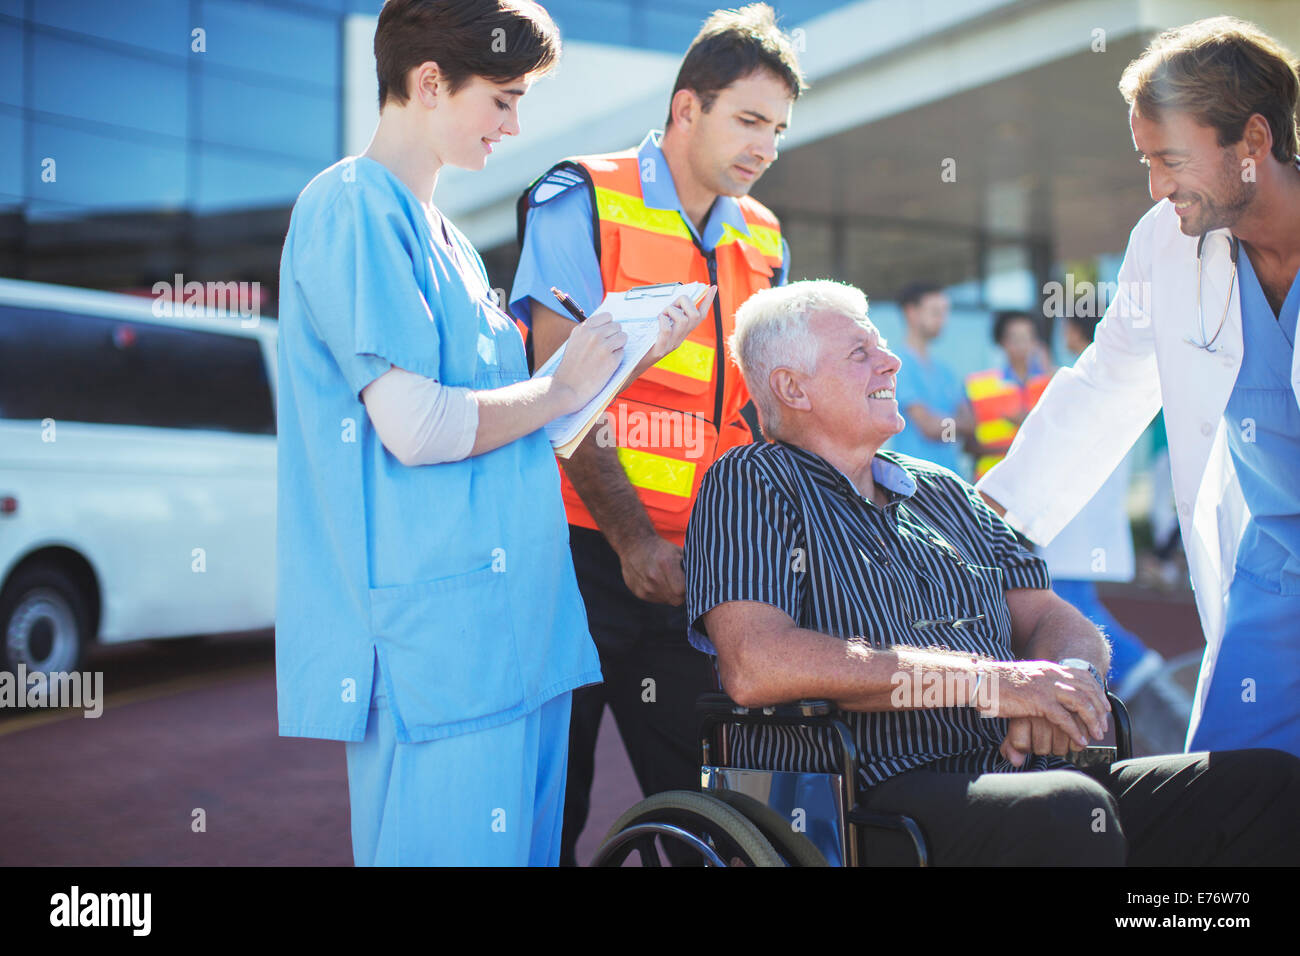 Doctor, nurse and paramedic talking to patient outside hospital - Stock Image